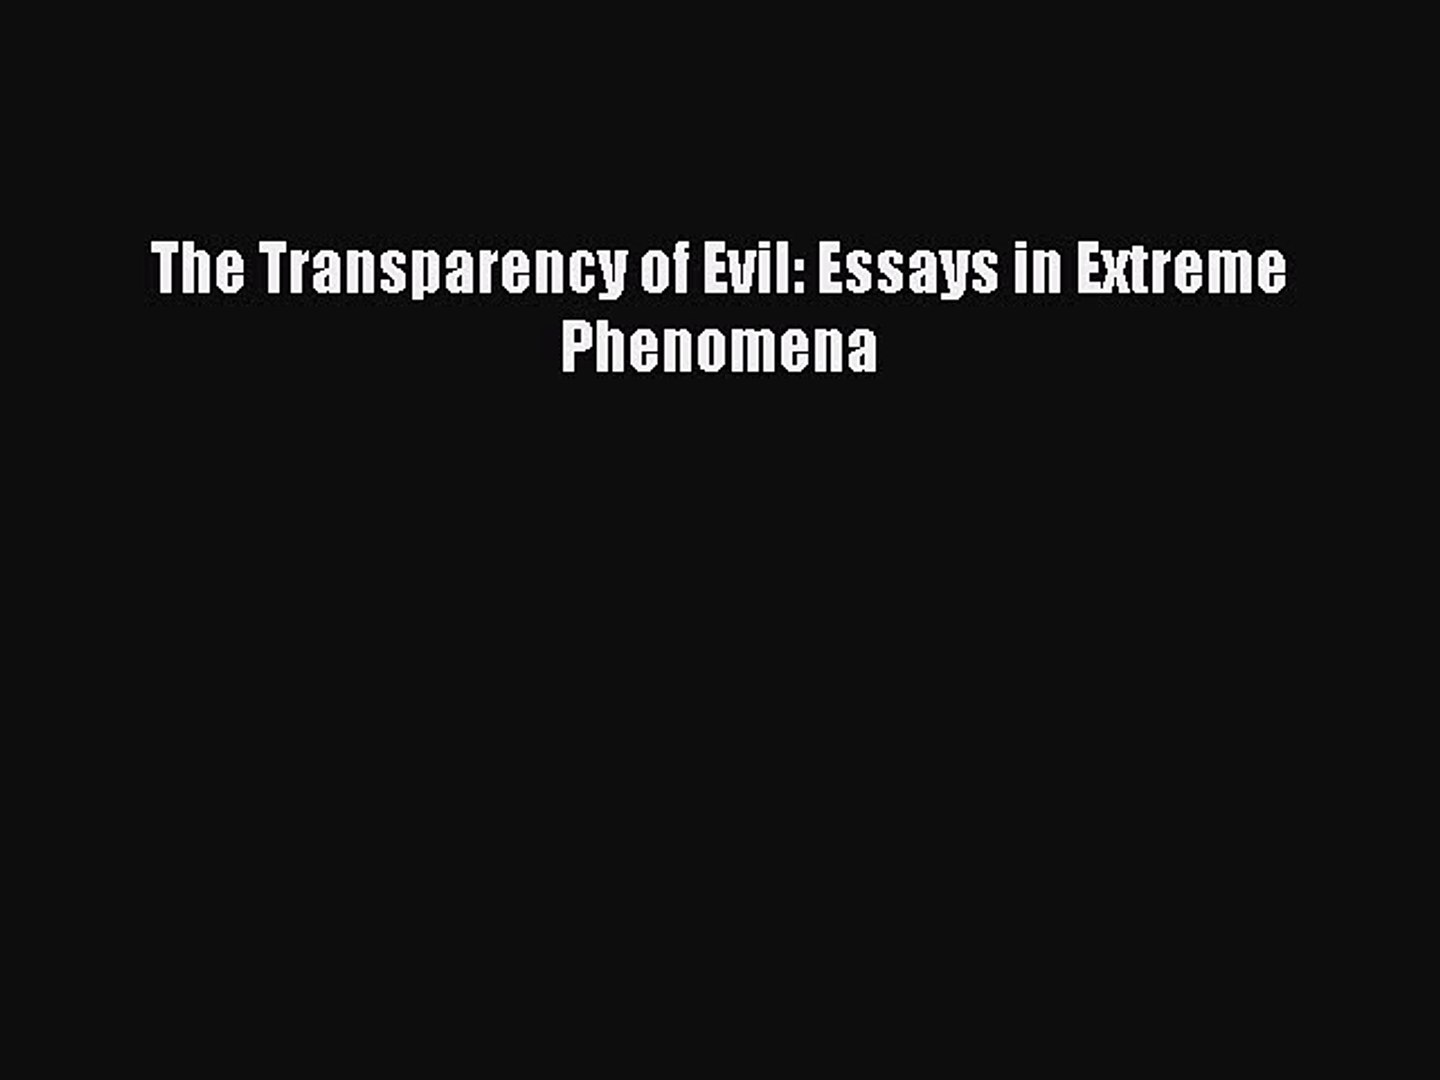 The Transparency of Evil Essays on Extreme Phenomena